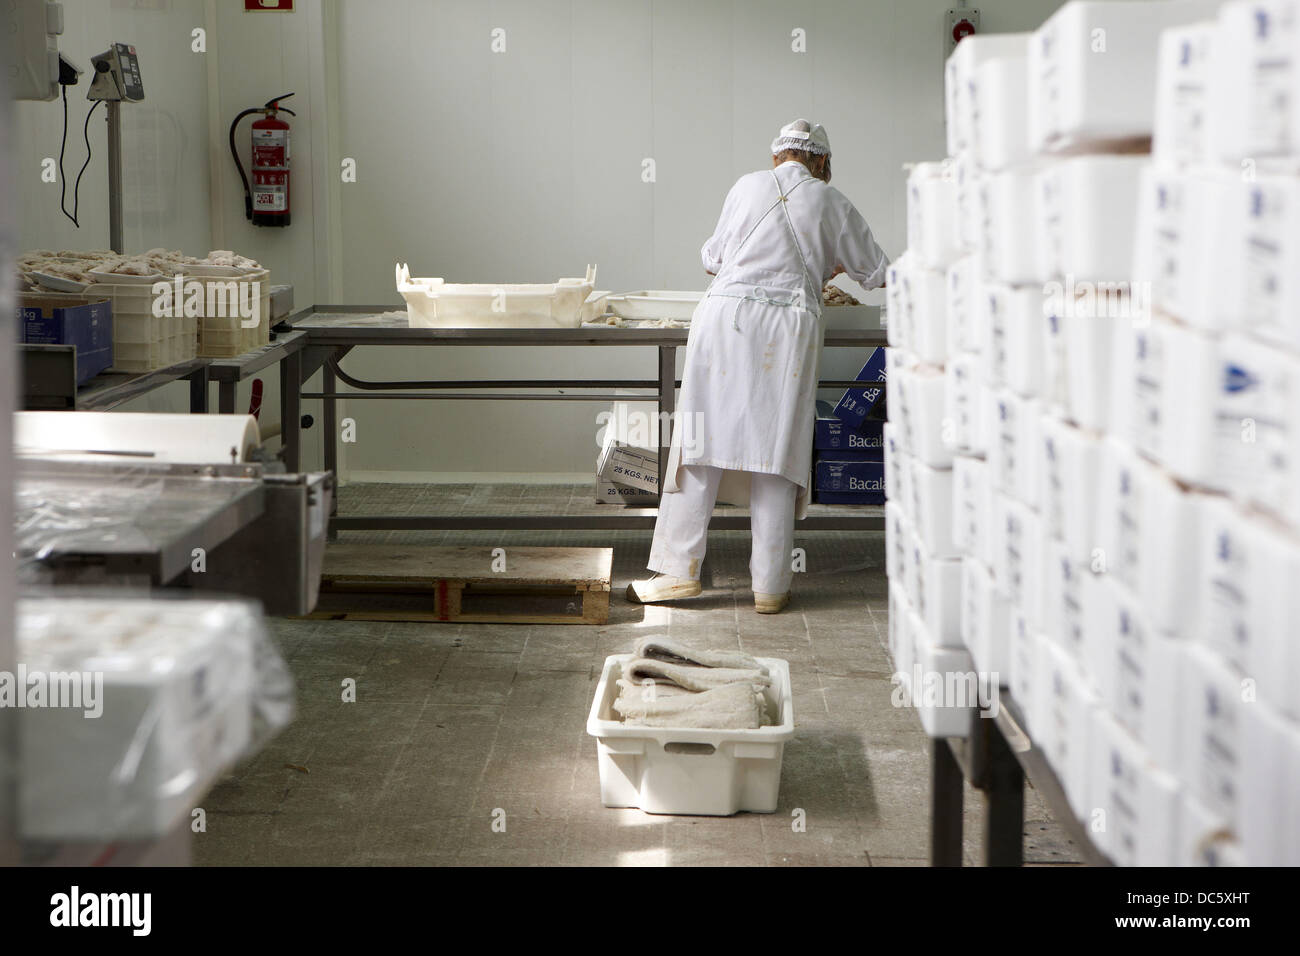 Manipulation of salt cod, refrigerated and frozen salt cod distribution - Stock Image